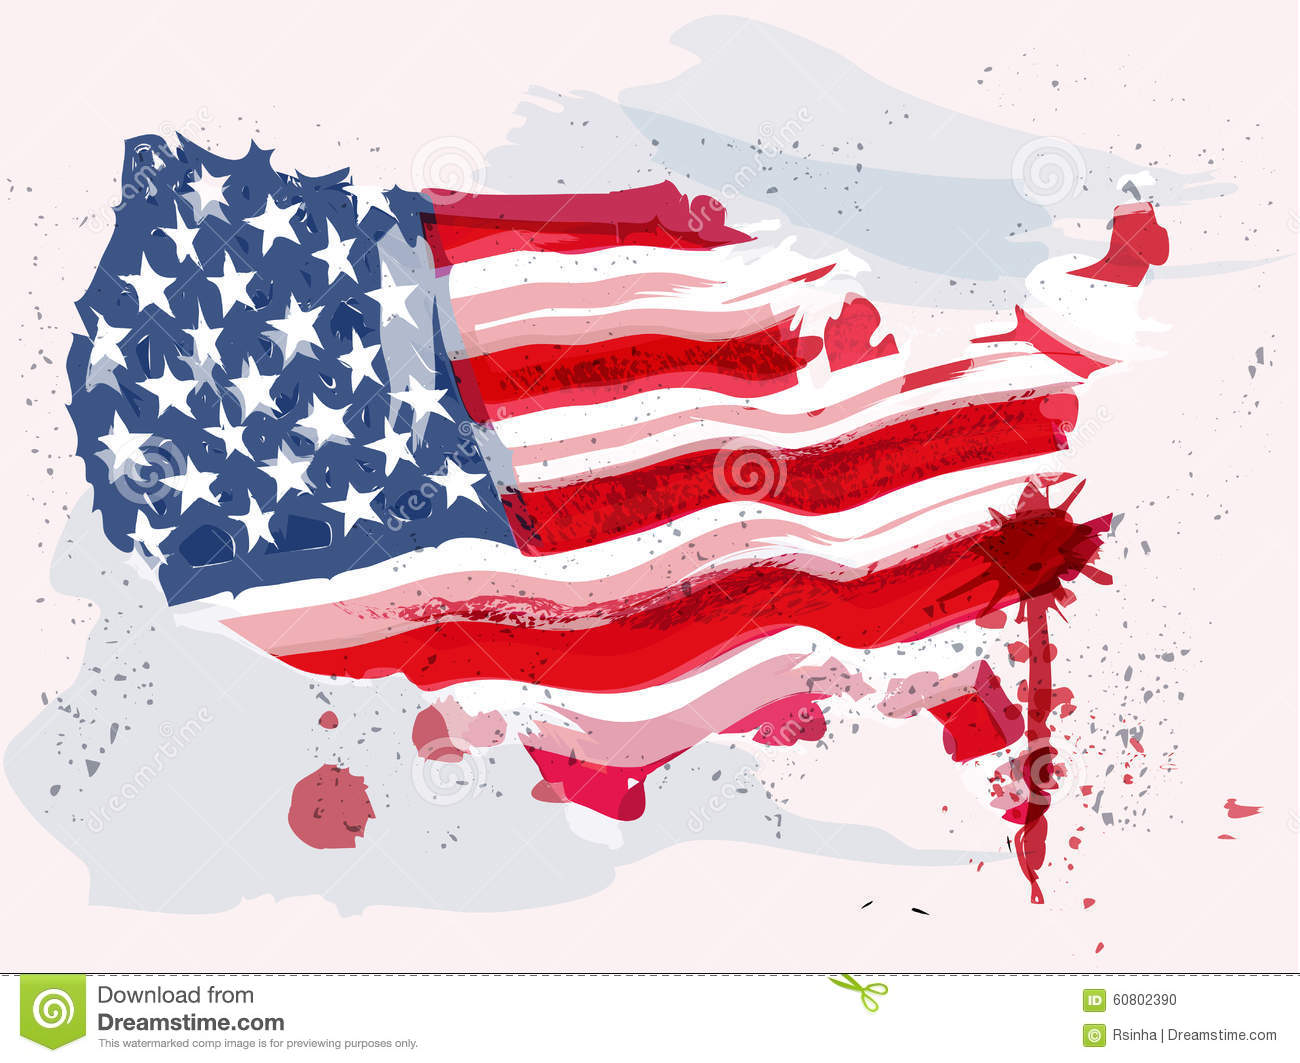 Usa Flag In Water Color Paint. Stock Vector - Illustration ... Paint Usa Map on usa map decor, usa map plane, usa map franklin, usa map with features, usa map vinyl, usa map chalkboard, usa map texture, usa map area rugs, usa map graffiti, usa map puzzle pieces, usa map detail, usa map water, usa map decal, usa map mural, usa map sheet, usa map curtains, usa map powerpoint, usa map food, usa map wrapping paper, usa map flag,